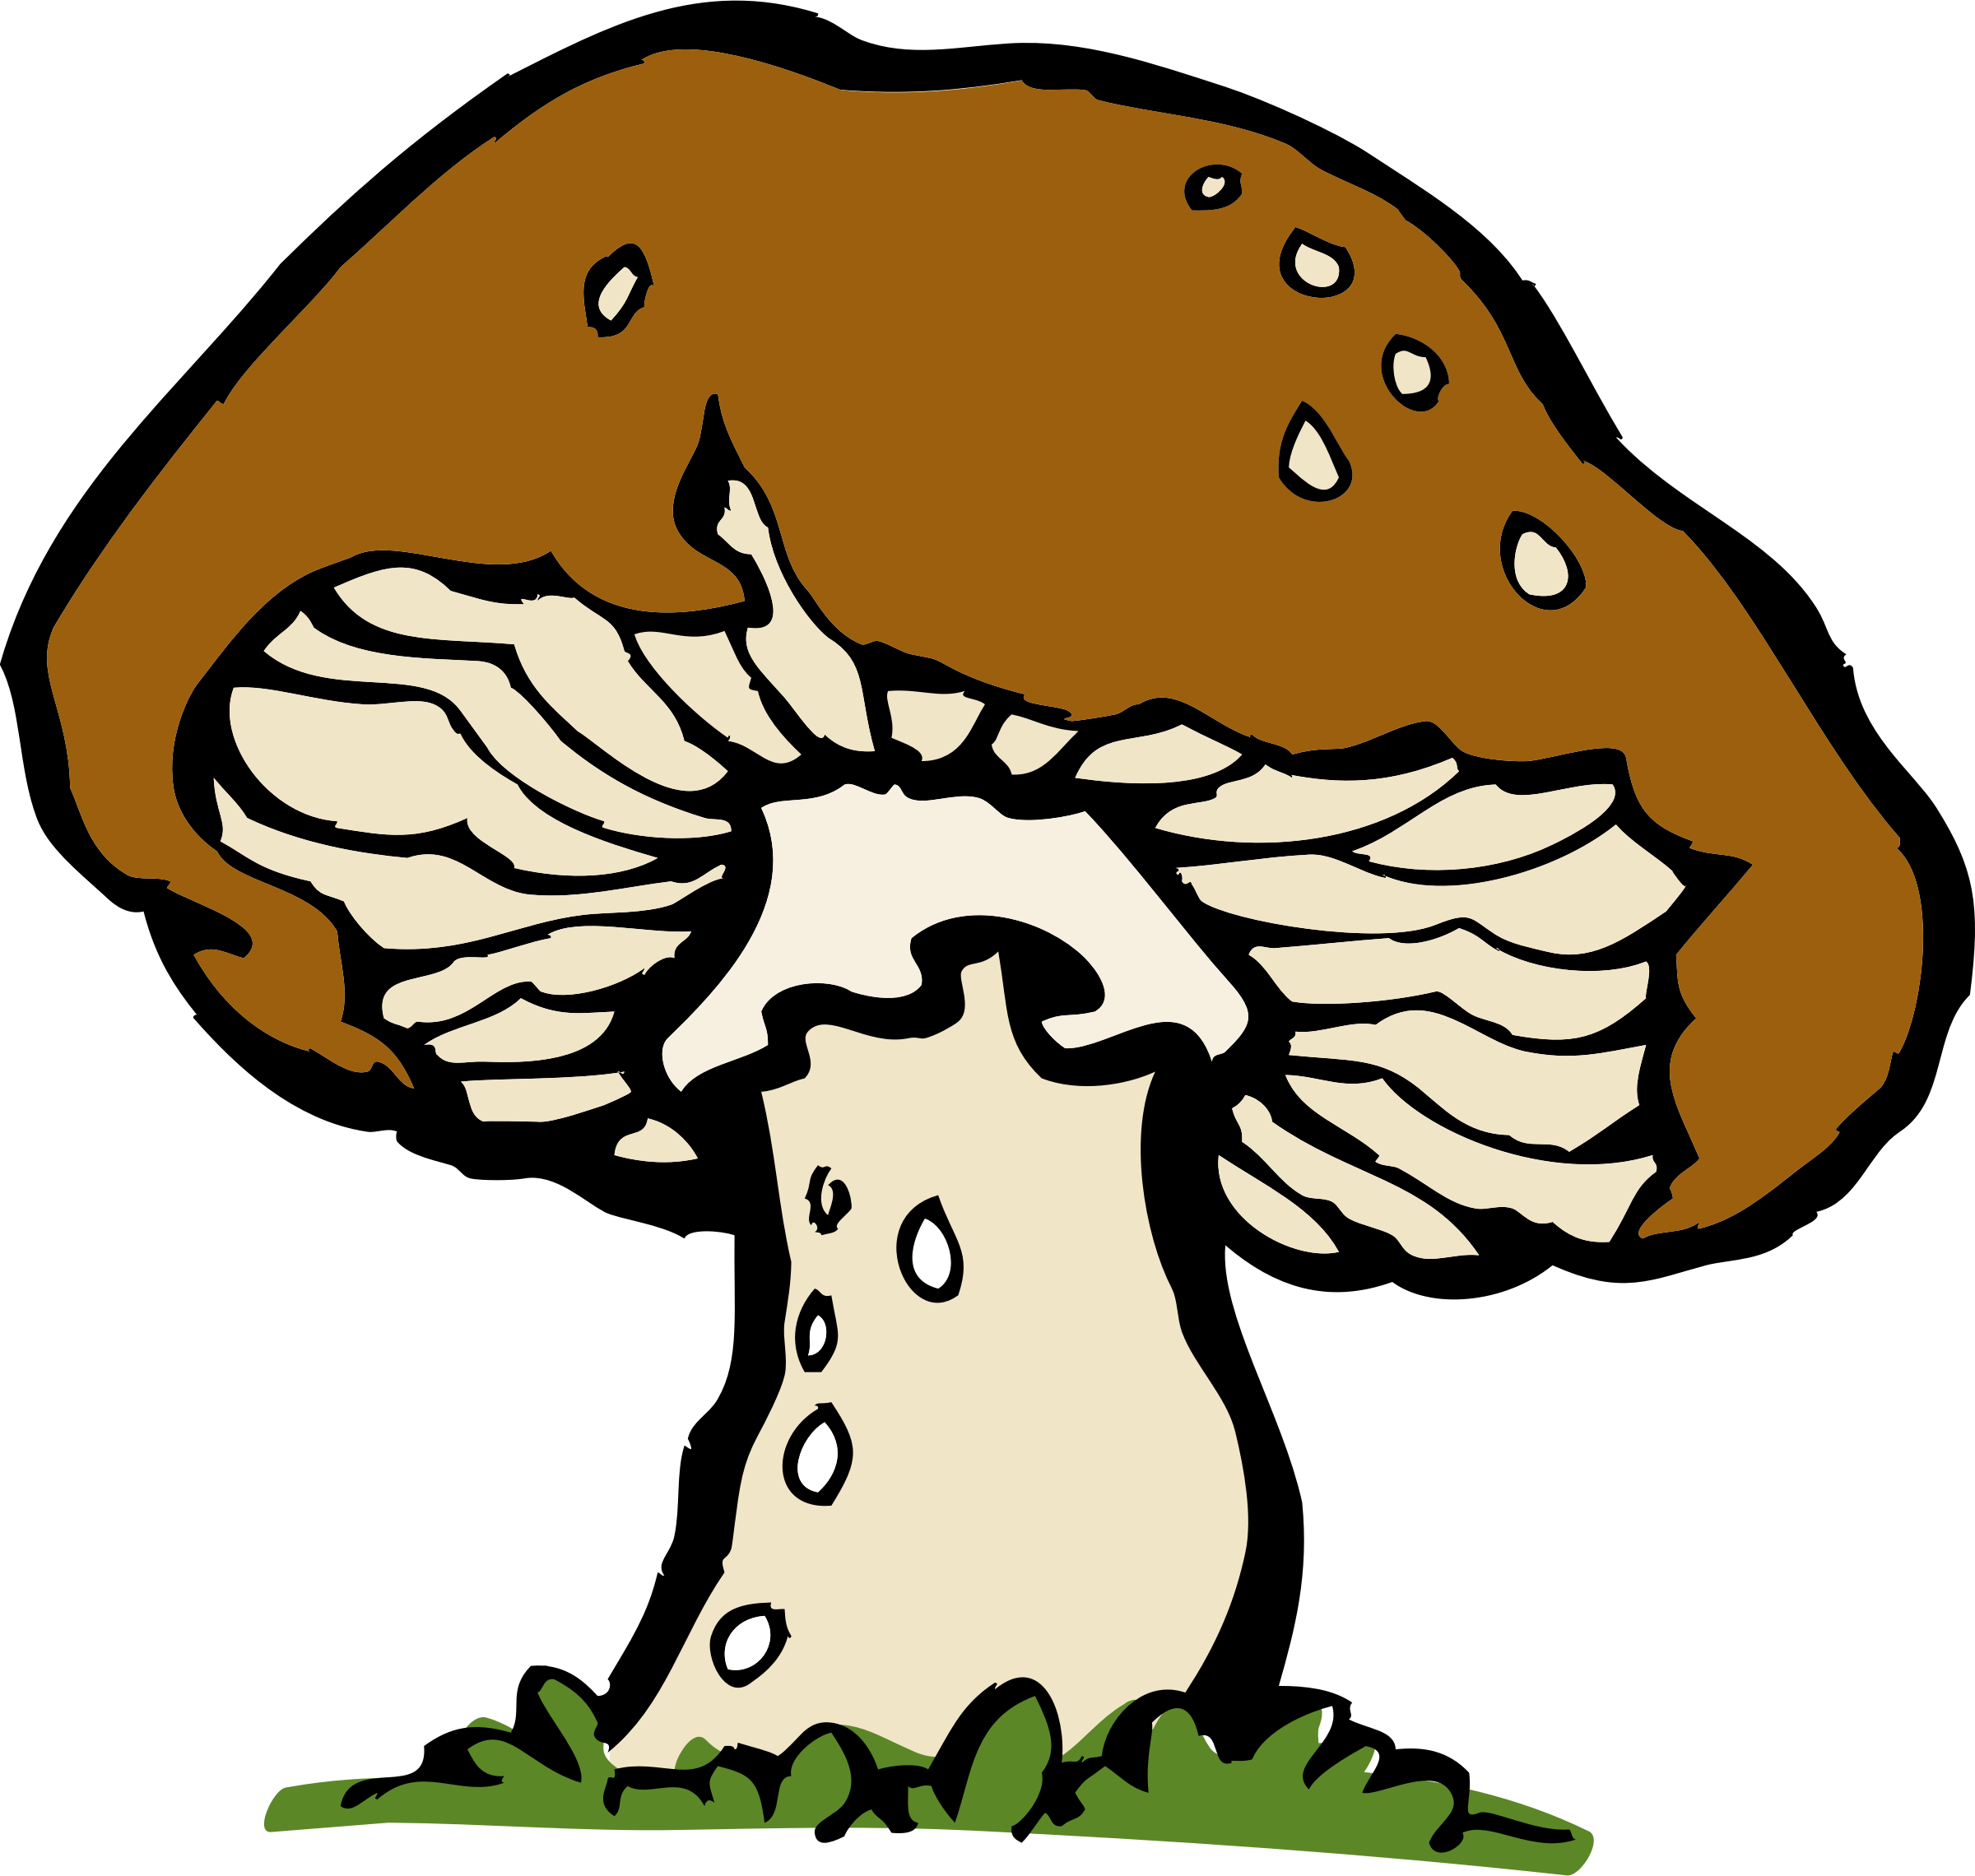 Mushrooms vector cartoony. Clipart free download best